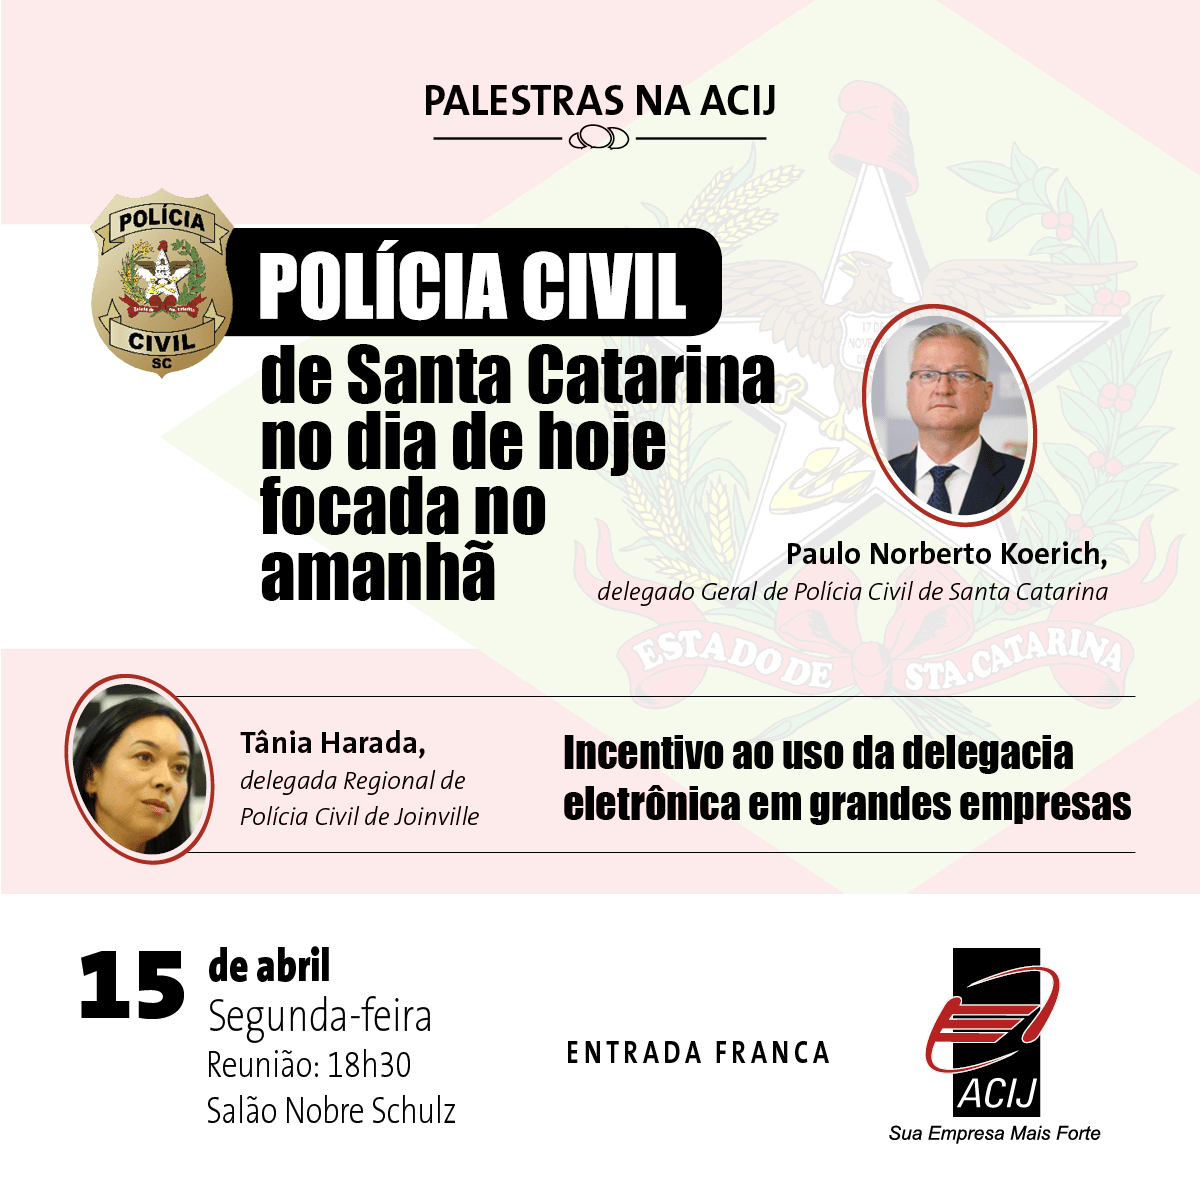 palestra-acij-policia-civil-santa-catarina-focada-no-amanha-website